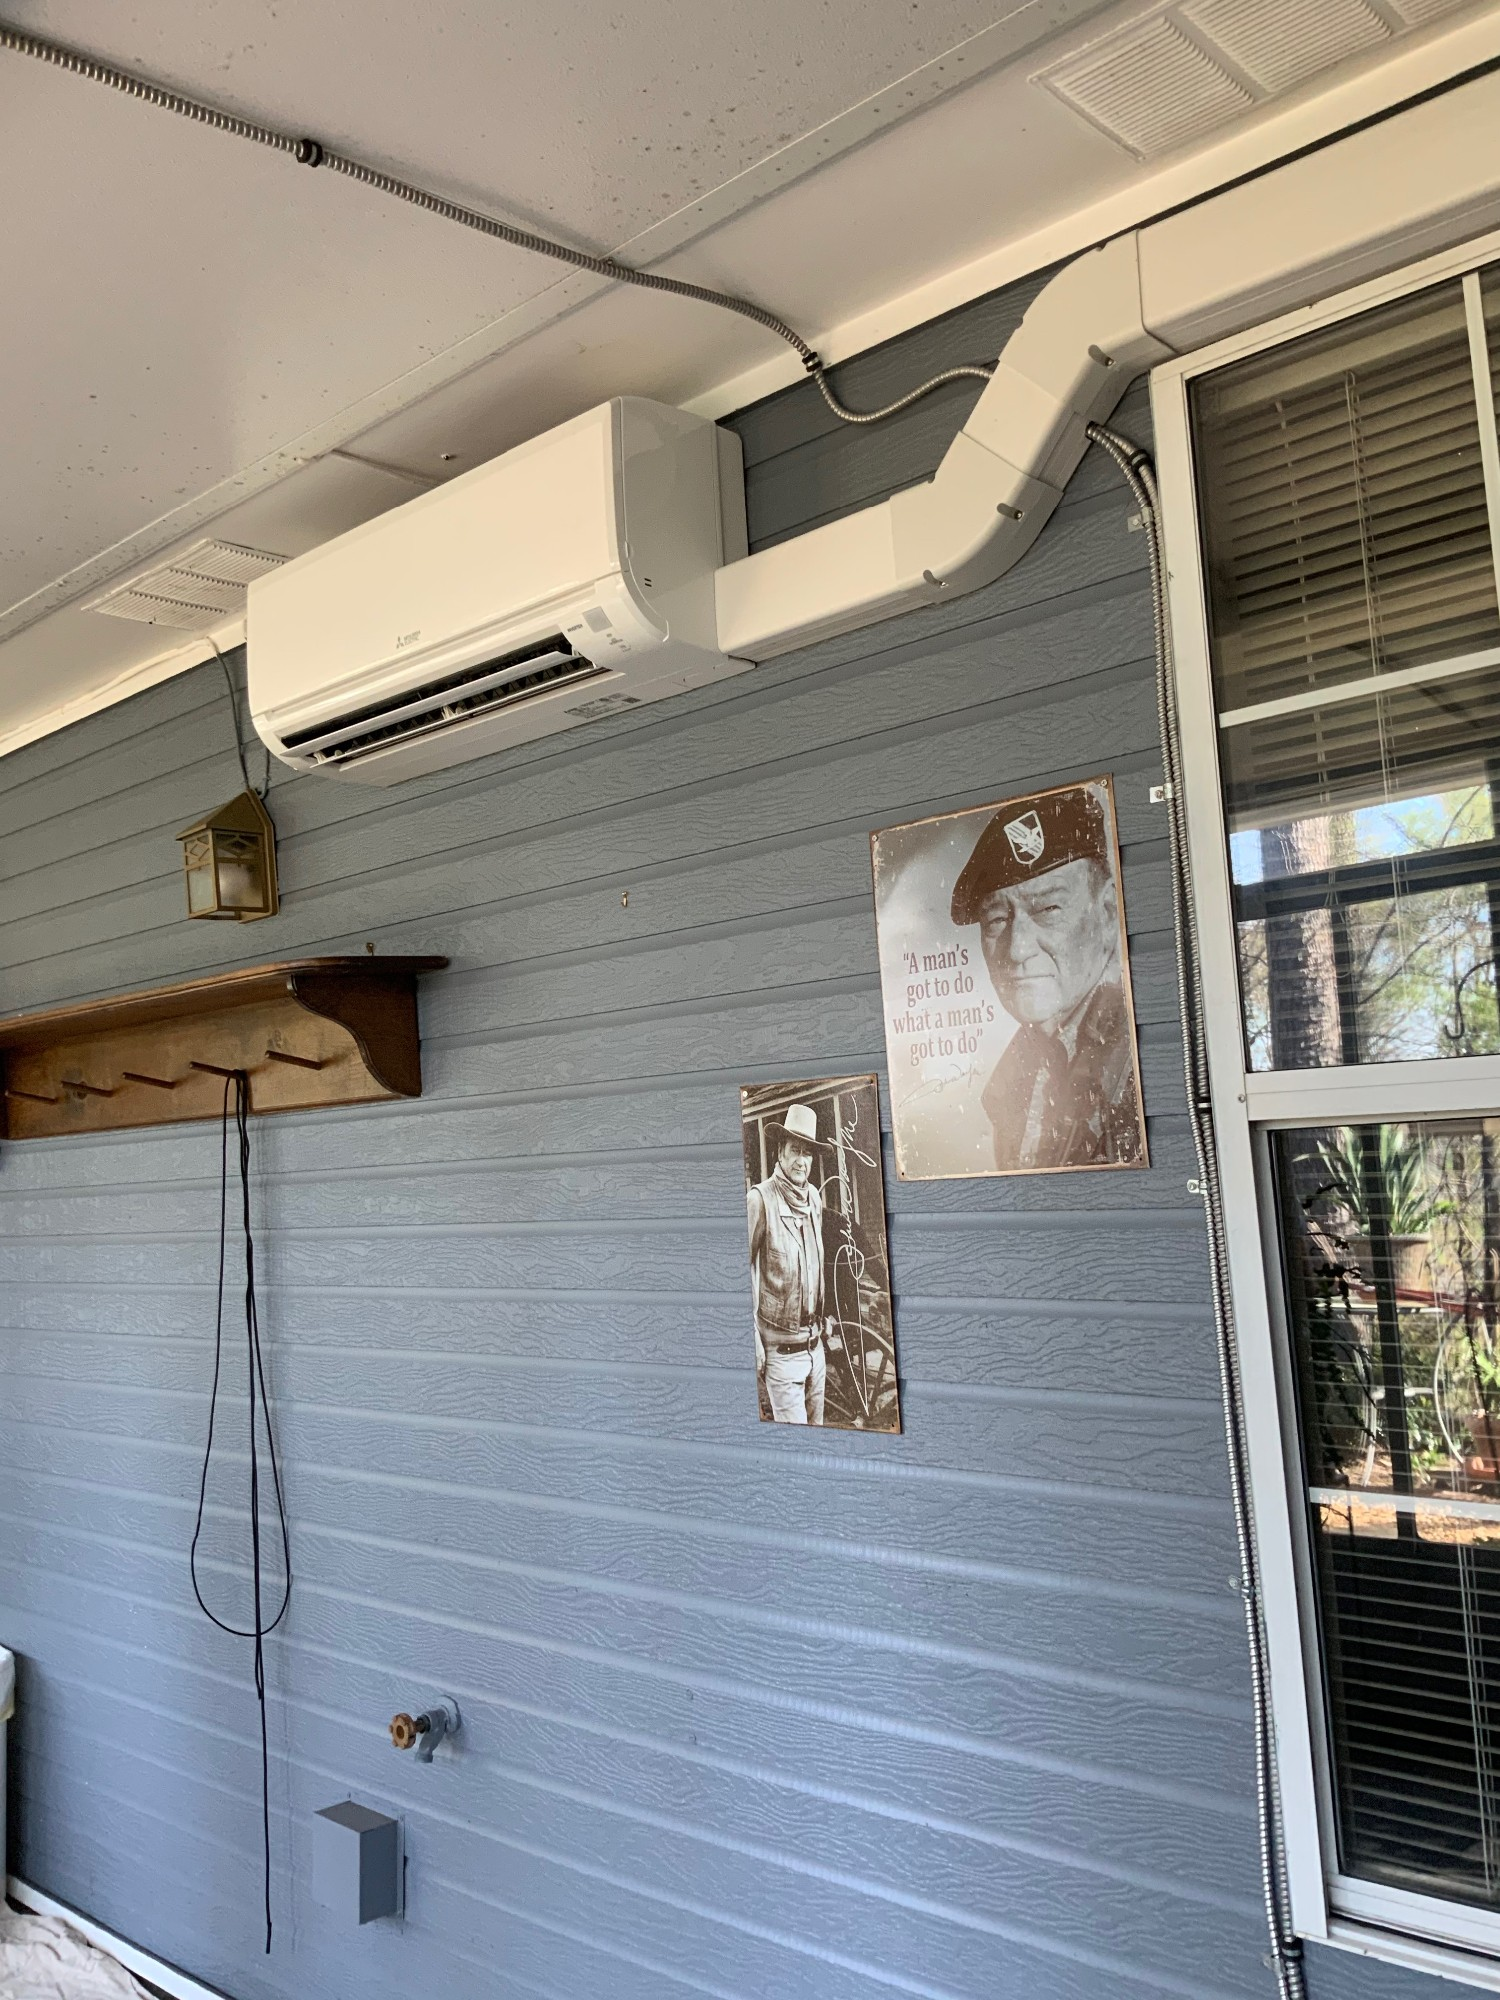 Wall-mounted Mitsubishi Ductless Mini Split